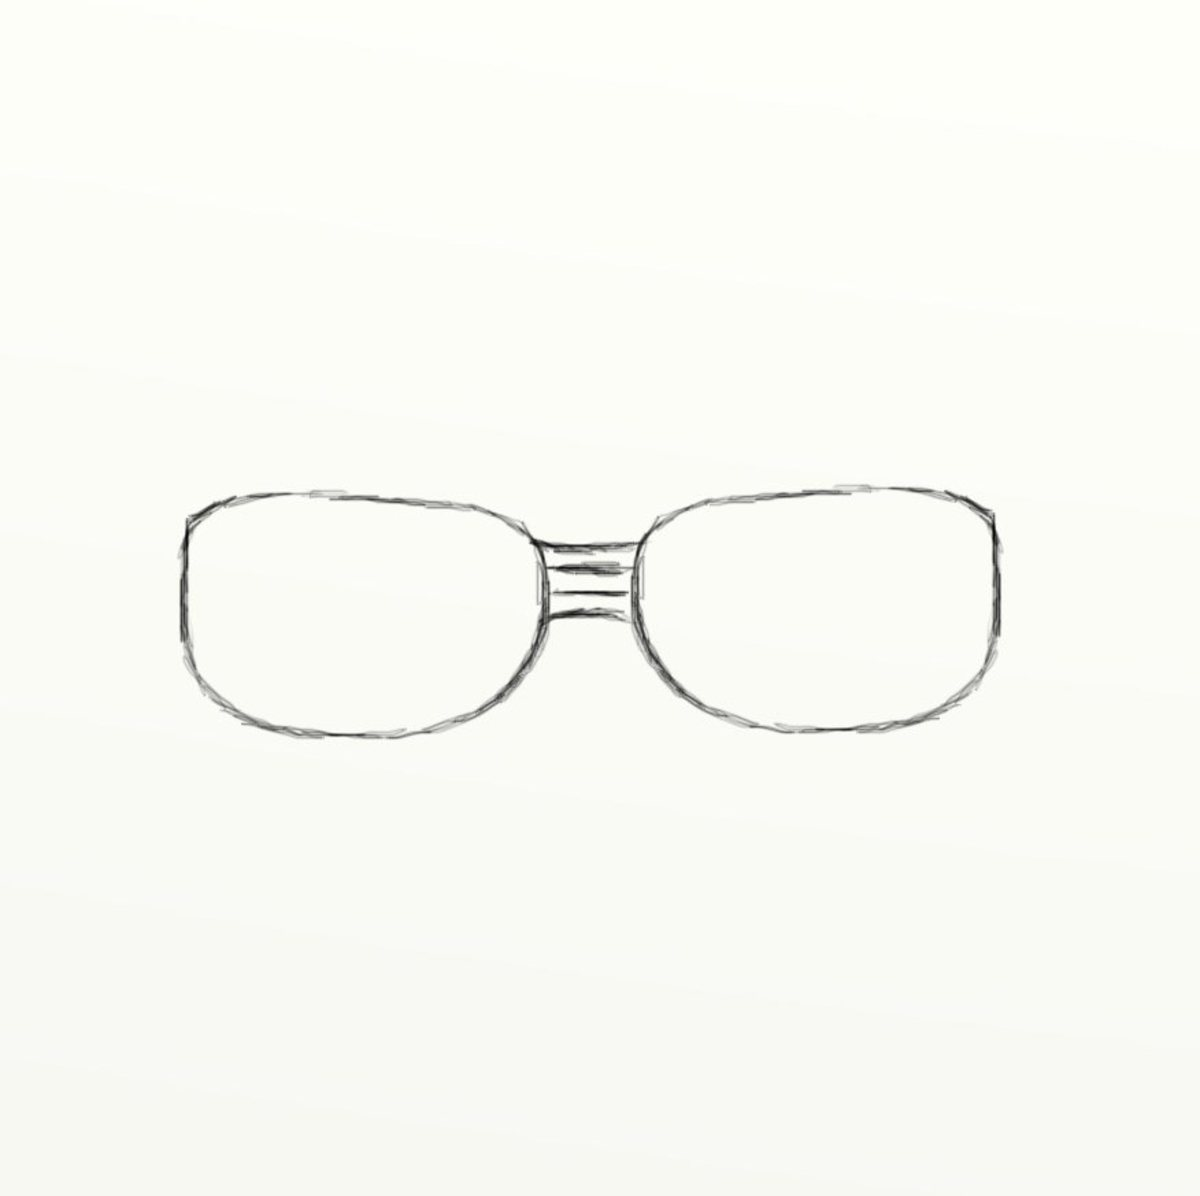 Line Drawing Glasses : How to draw eye glasses feltmagnet